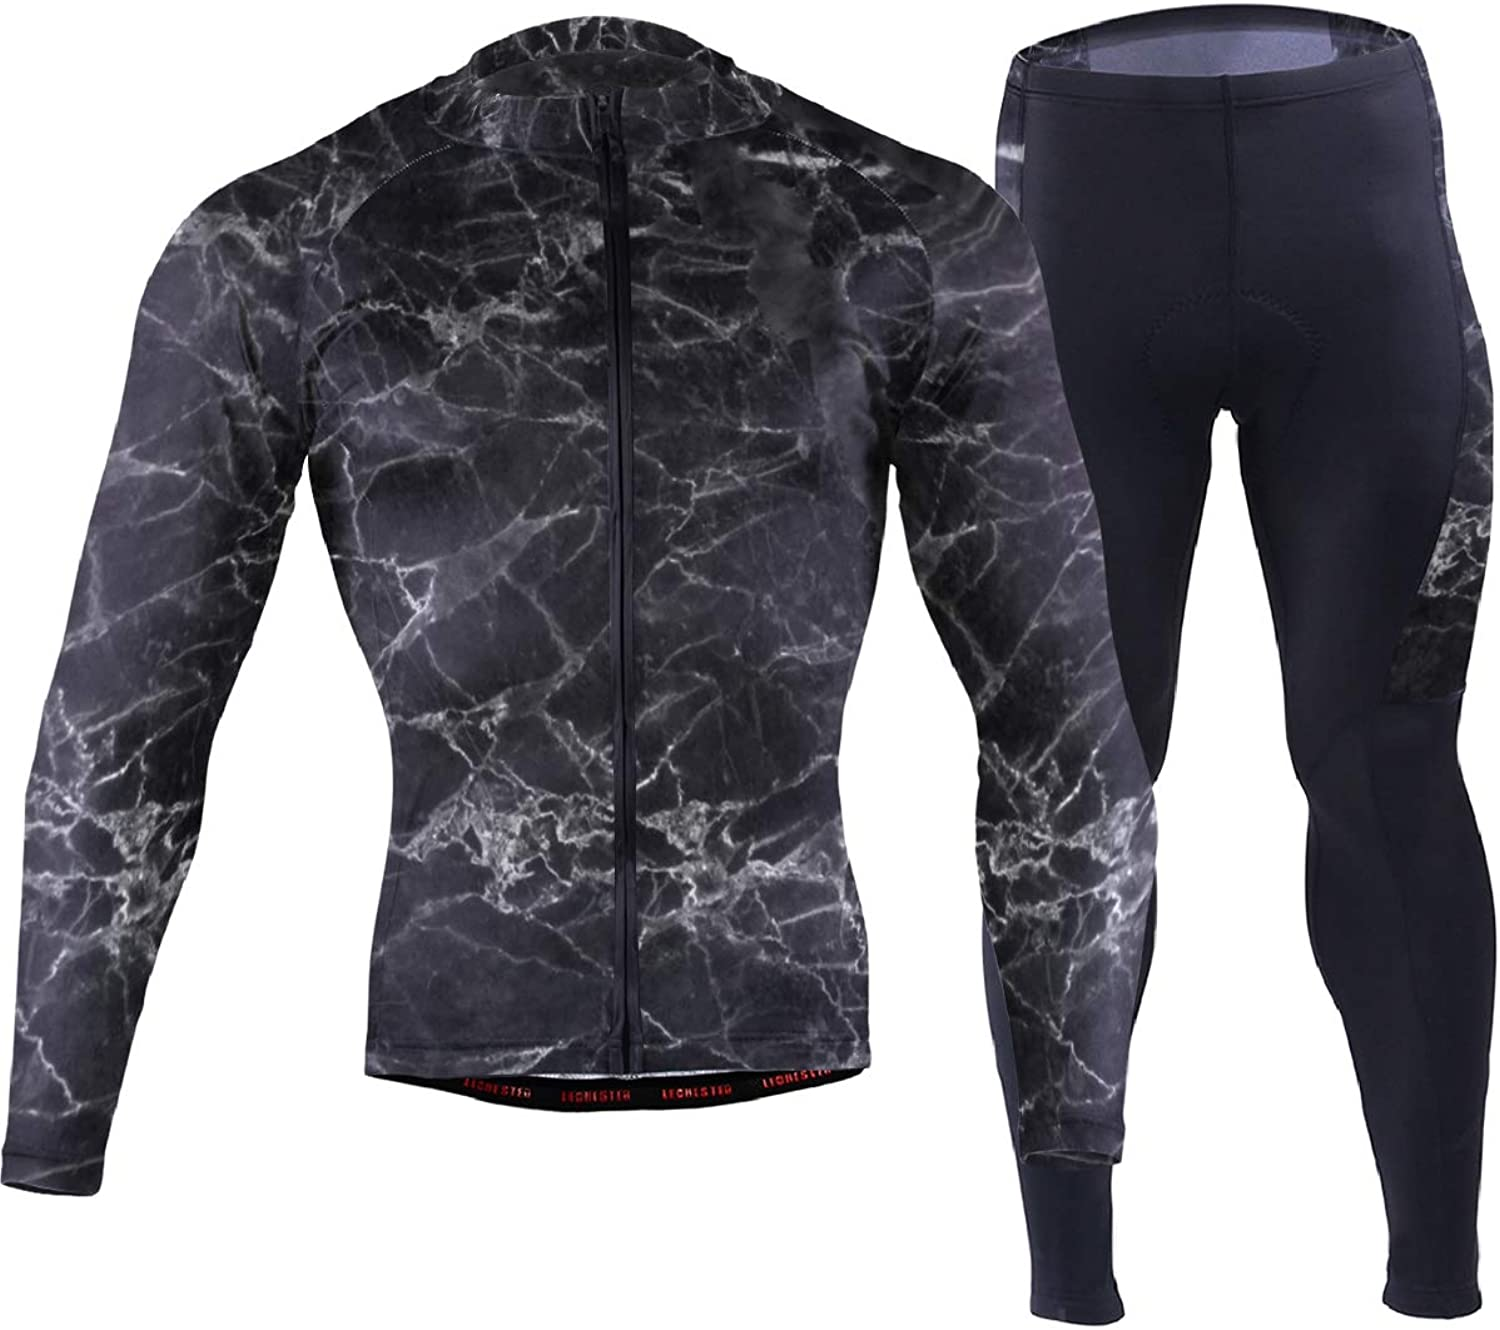 FAJRO Awesome Black Marble Sportswear Suit Bike Outfit Set Breathable Quick Dry 3D Padded Pants